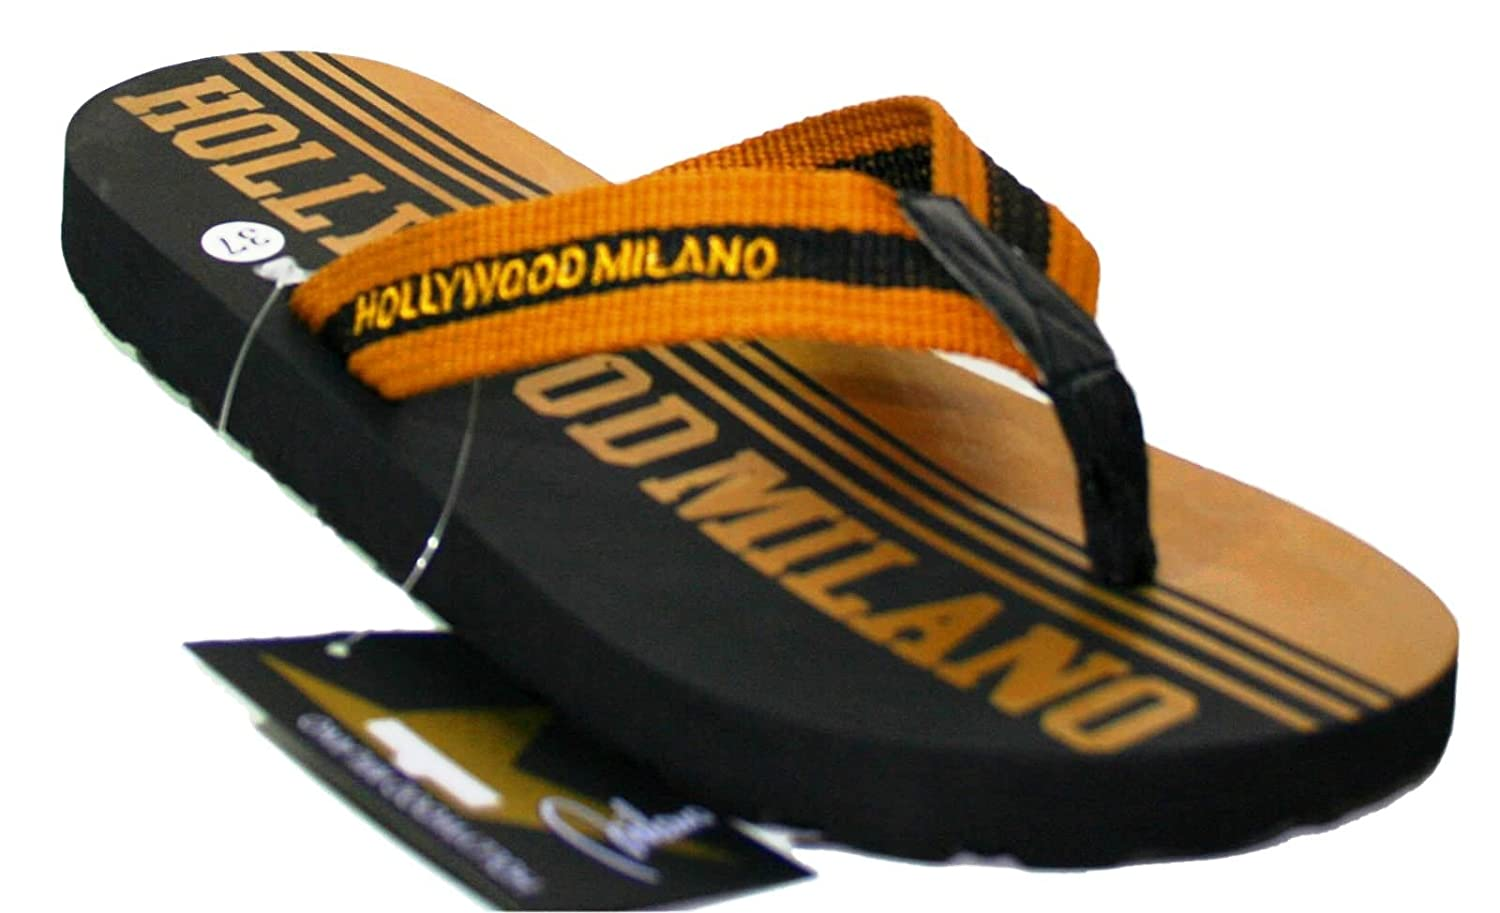 79cacc6ca1cf47 HOLLYWOOD MILANO Women s Thong Sandals Blue Blu Oro 3.5 Black Size  5   Amazon.co.uk  Shoes   Bags